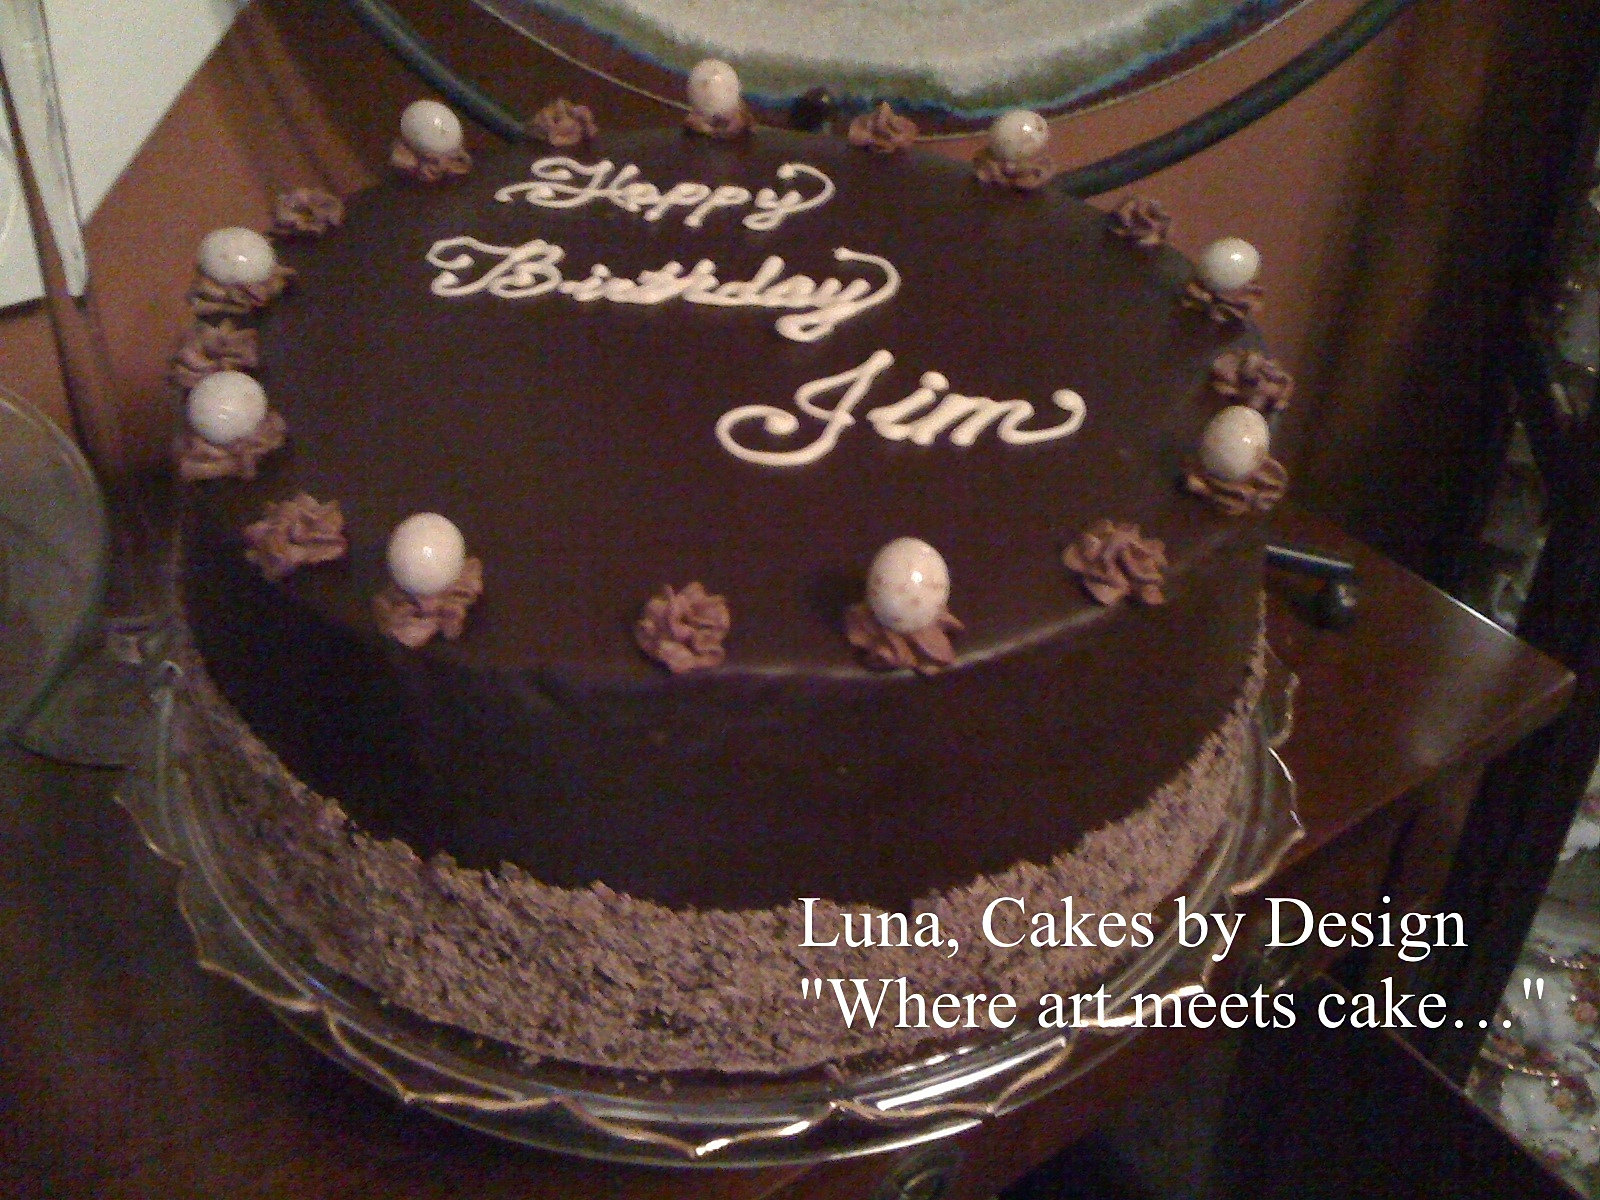 Birthday Cake Photos Chocolate Ganache : Luna, Cakes by Design Wedding Cakes Sharon Springs, NY ...